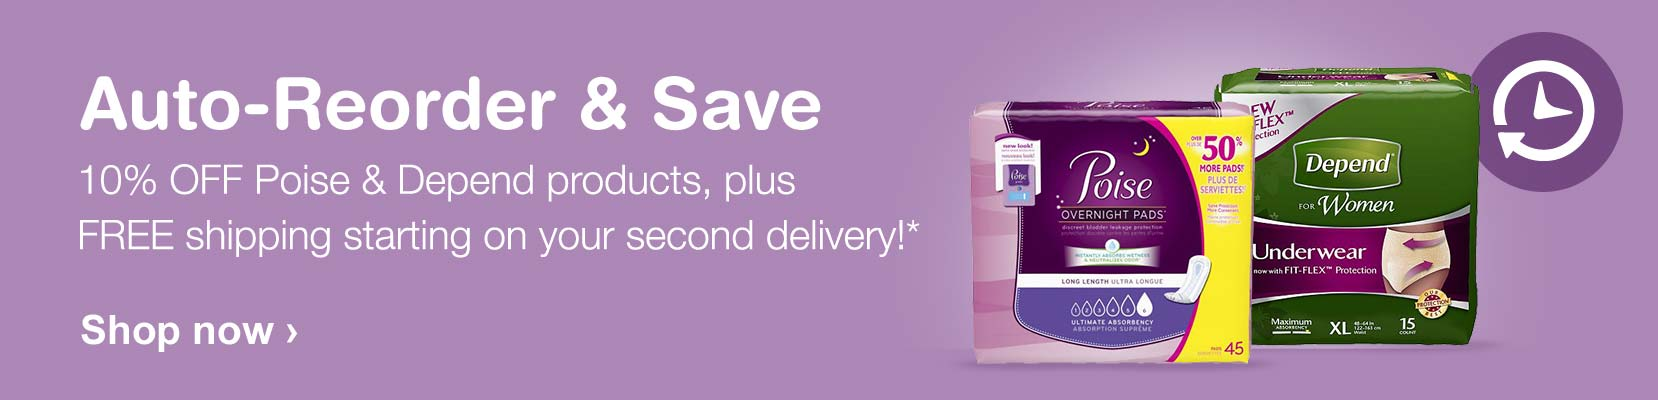 Auto-Reorder & Save. 10% OFF Poise & Depend products, plus FREE shipping starting on your second delivery!* Shop now.